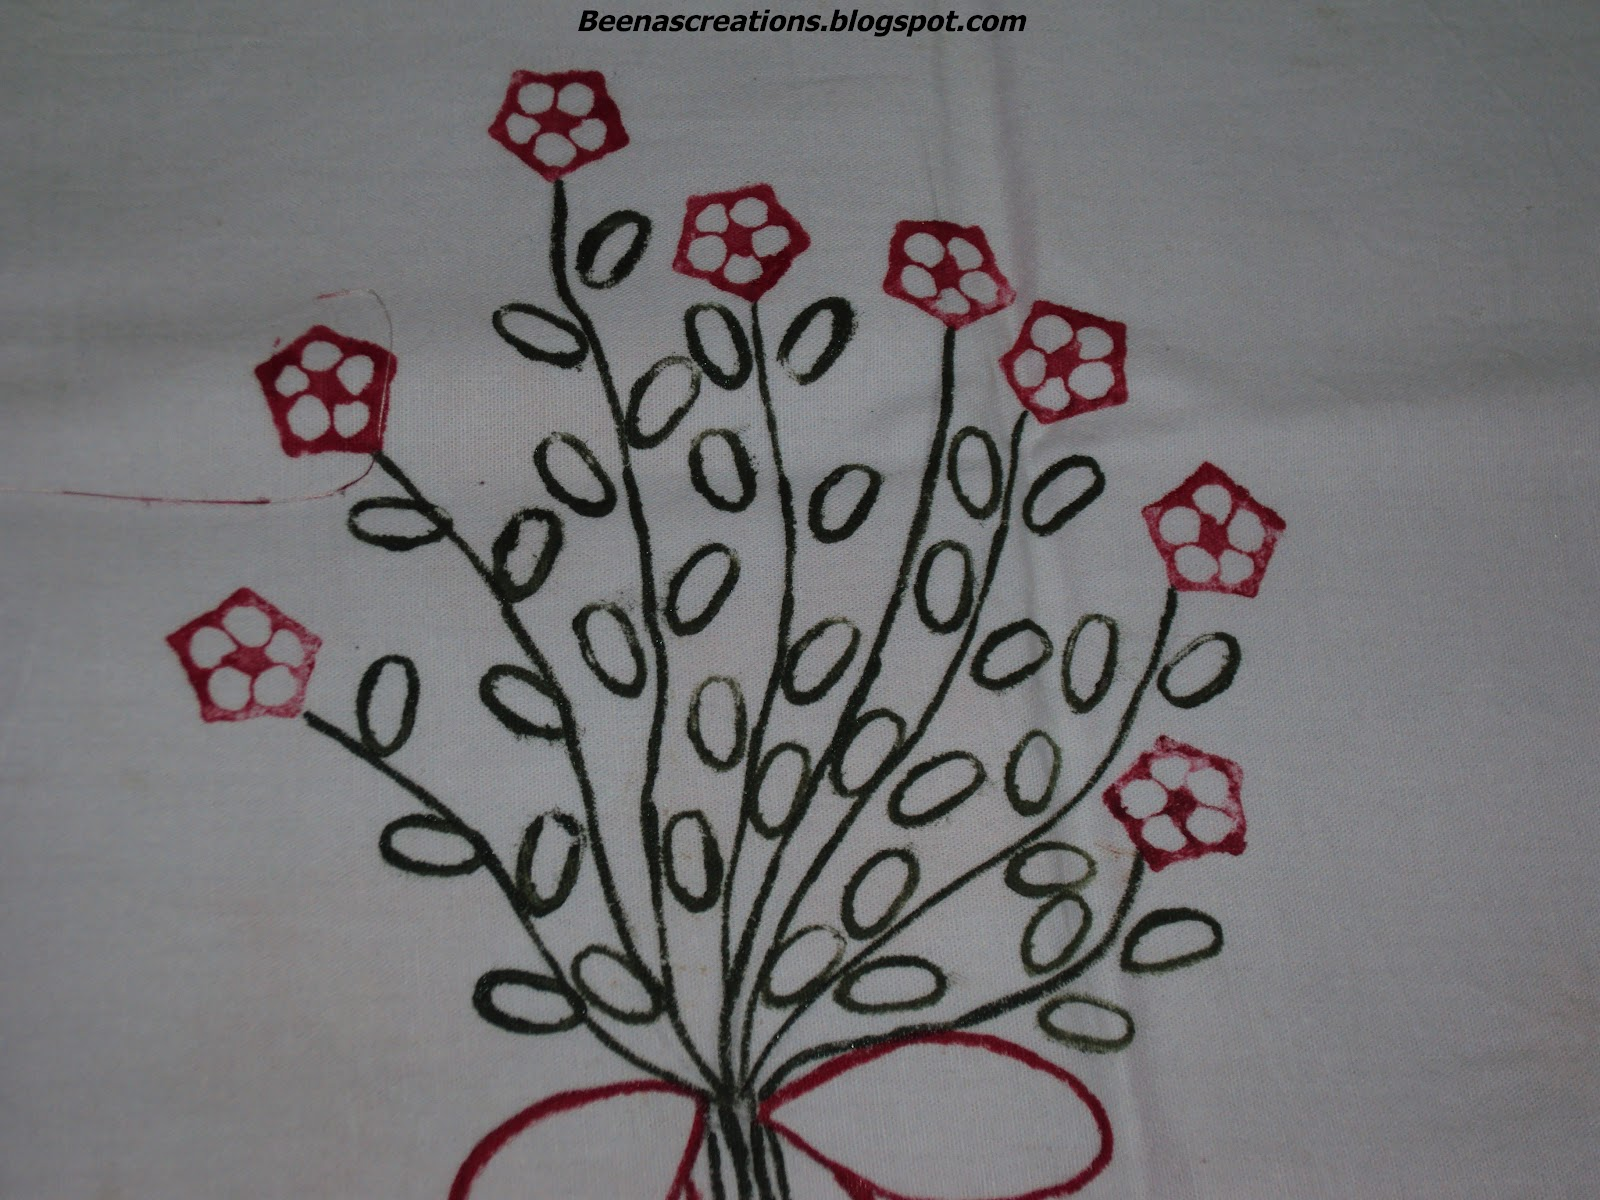 Vegetable printing is a simple art that even small children can try